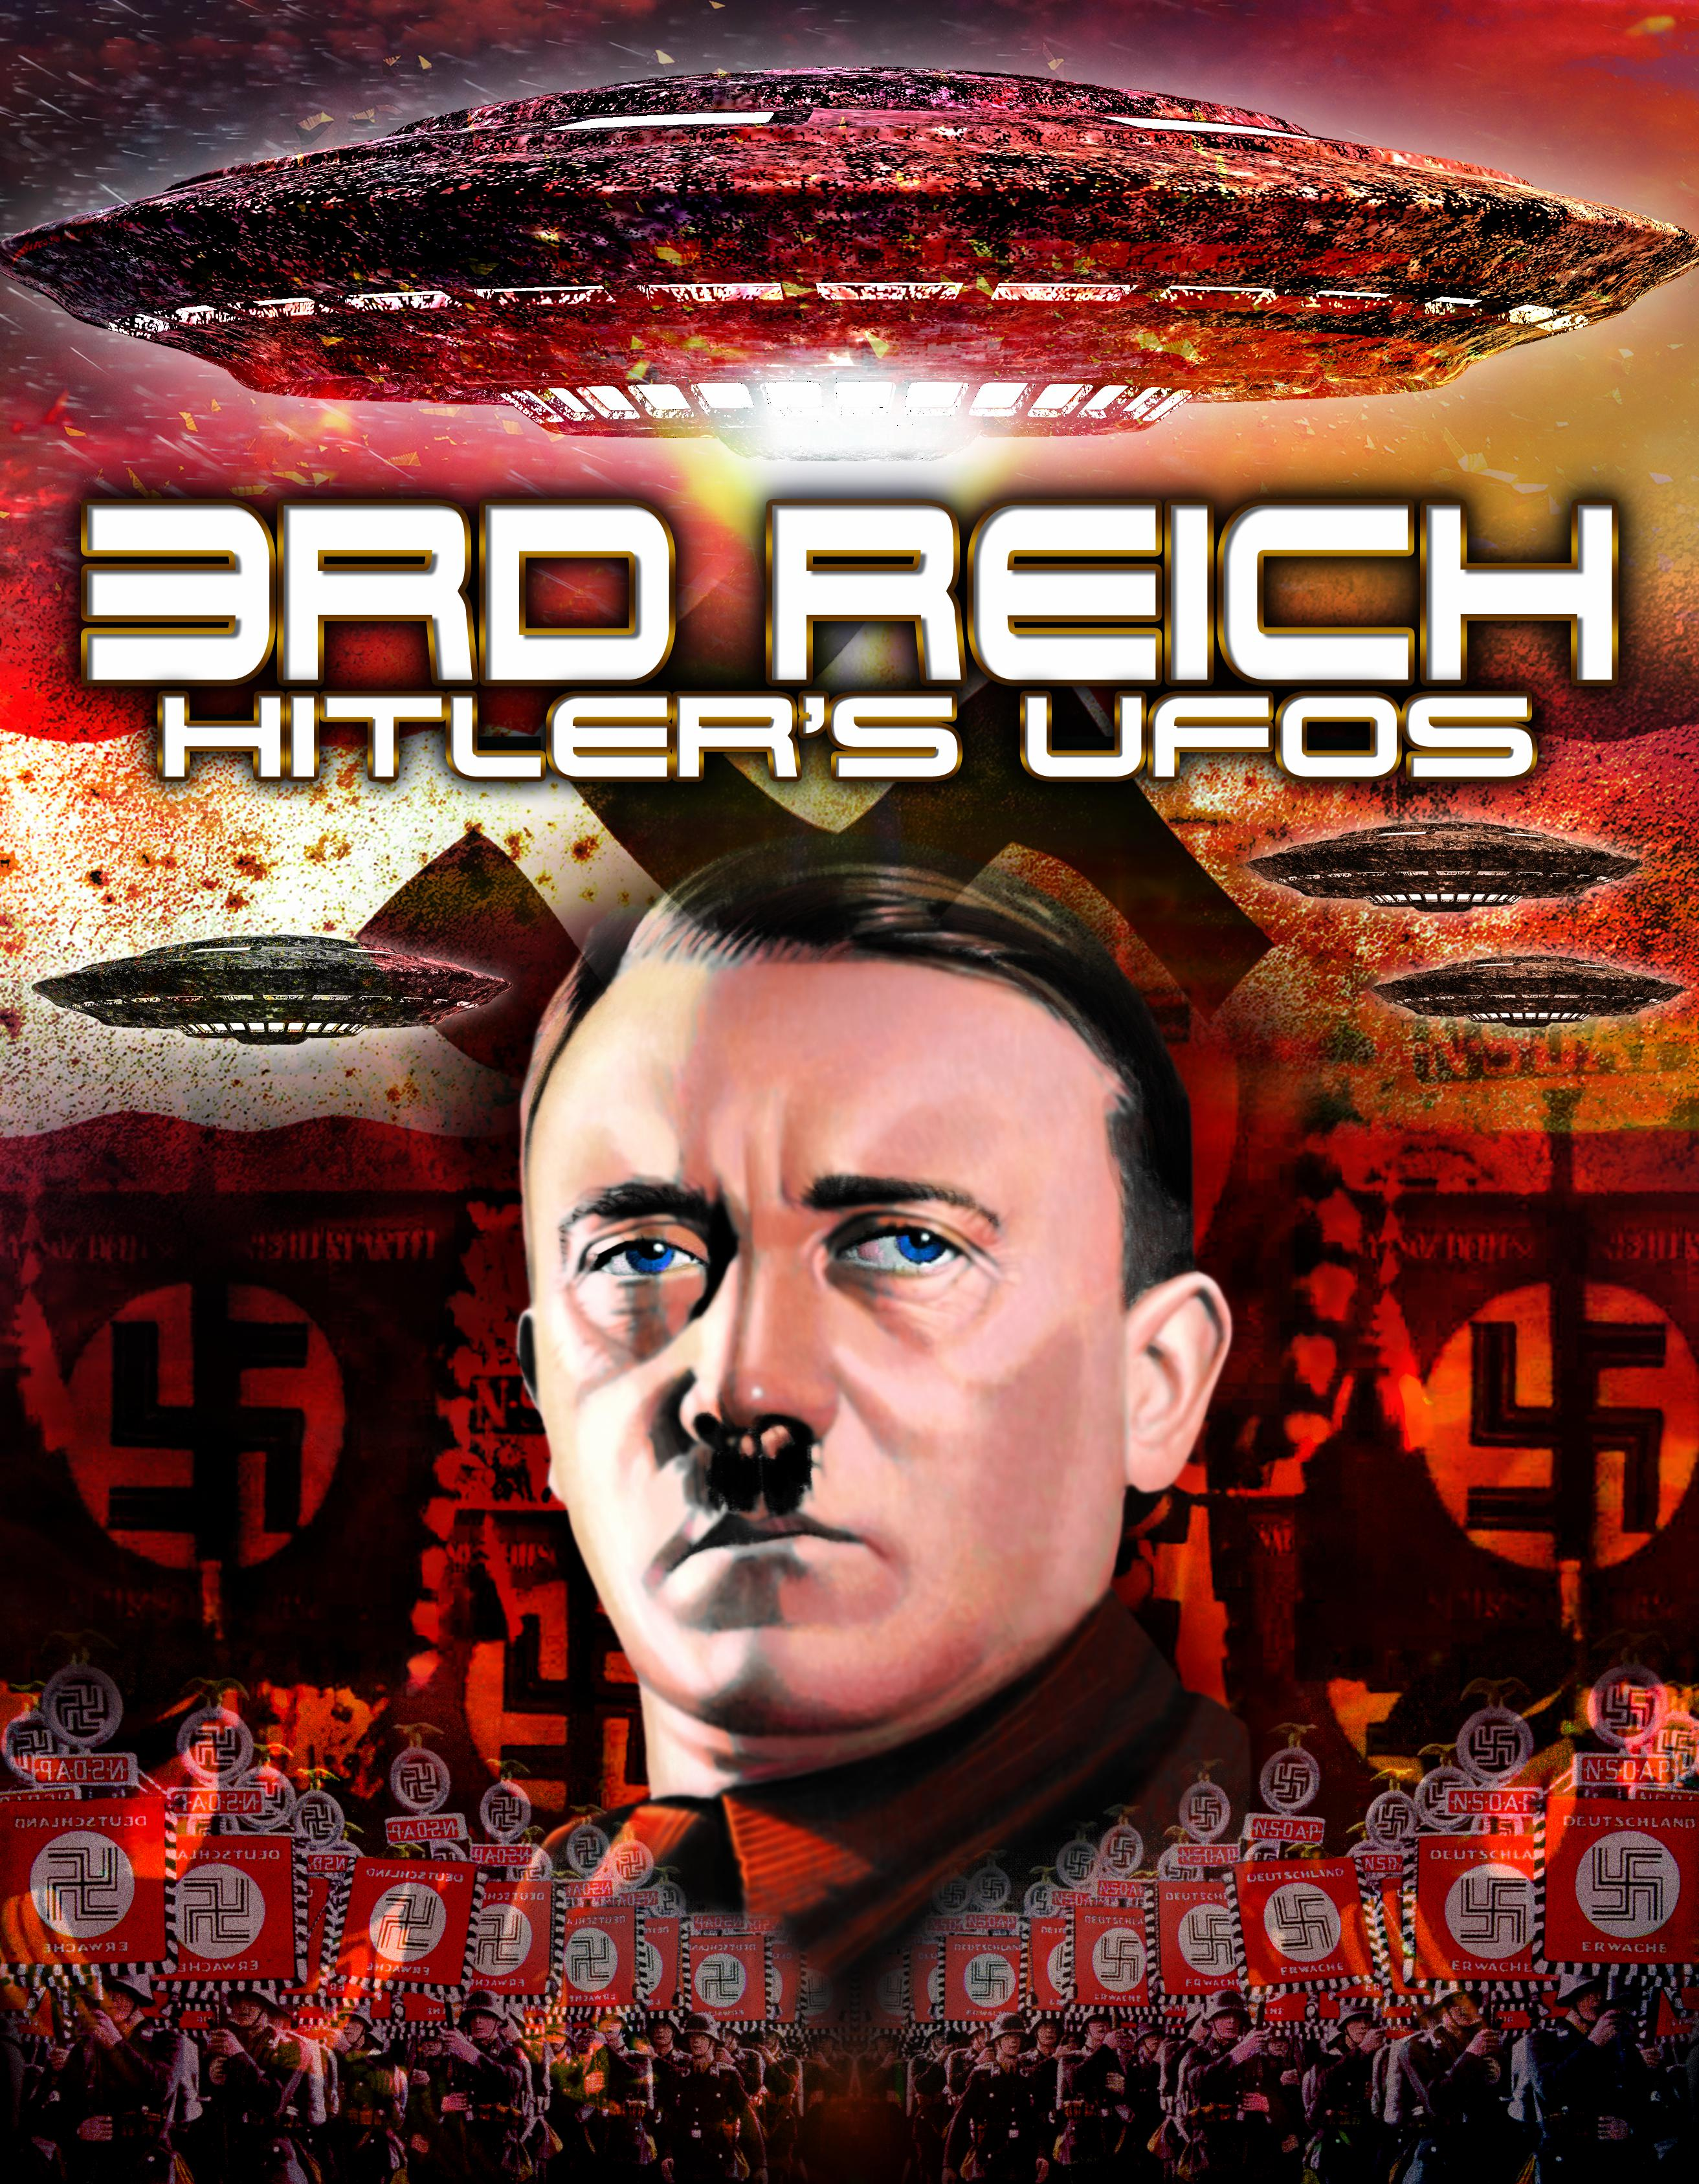 3rd Reich: Hitler's UFOs and the Nazi's Most Powerful Weapon